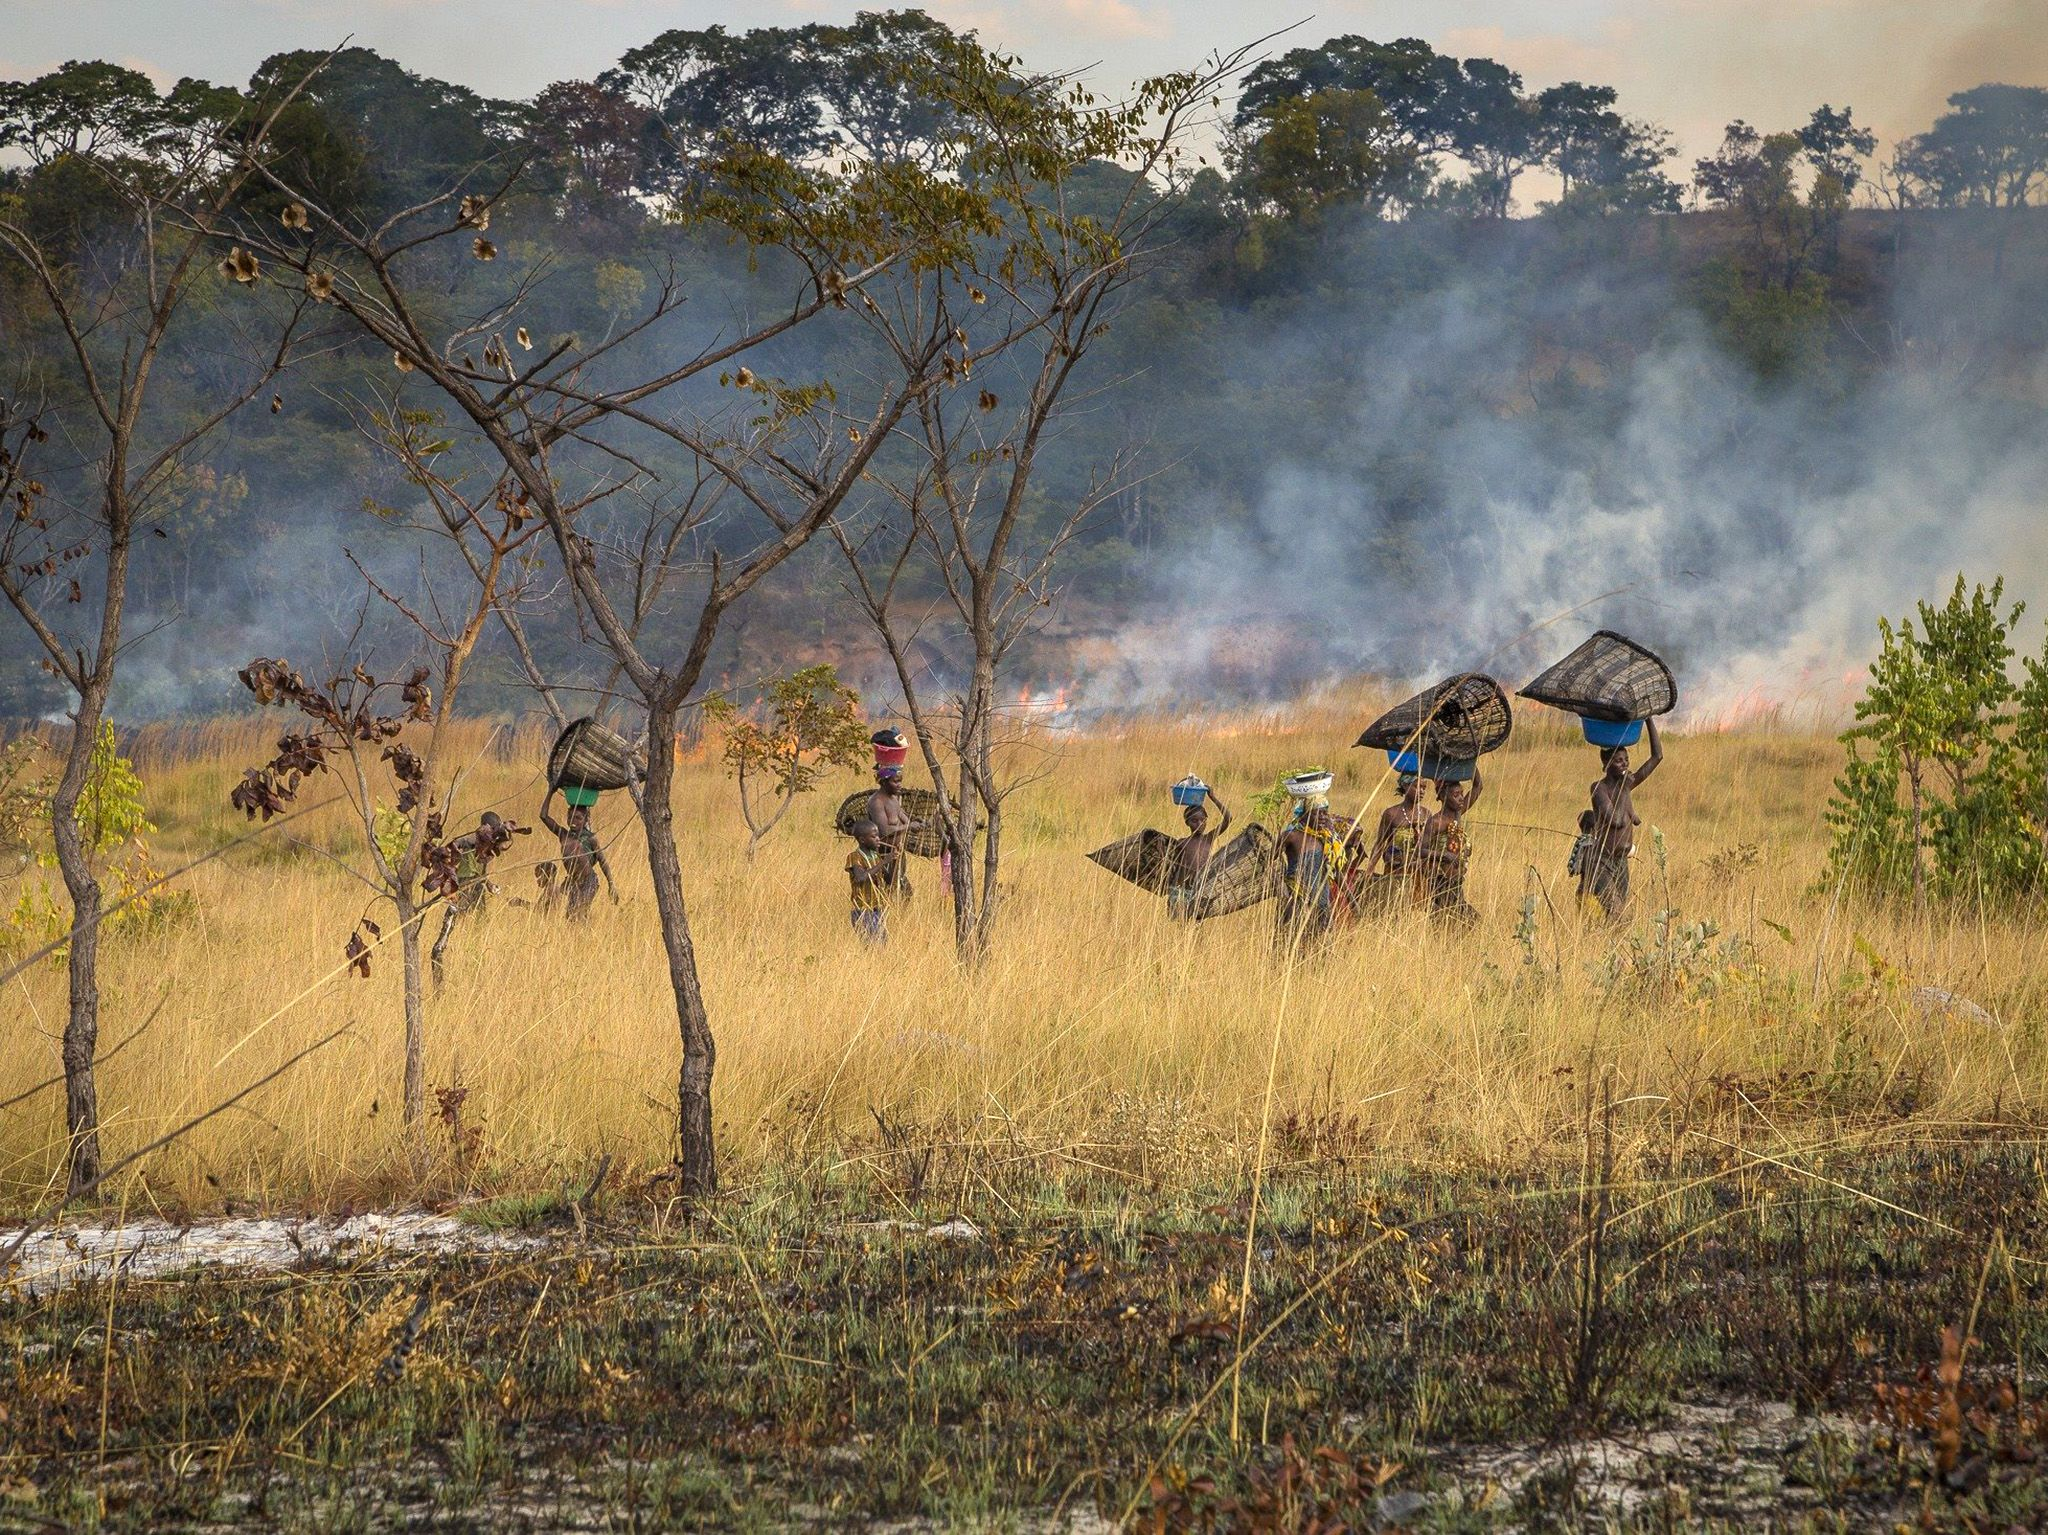 Angola:  A group of Angolan locals carry fishing nets as a bush fire rages on behind them.  ... [Photo of the day - January 2019]